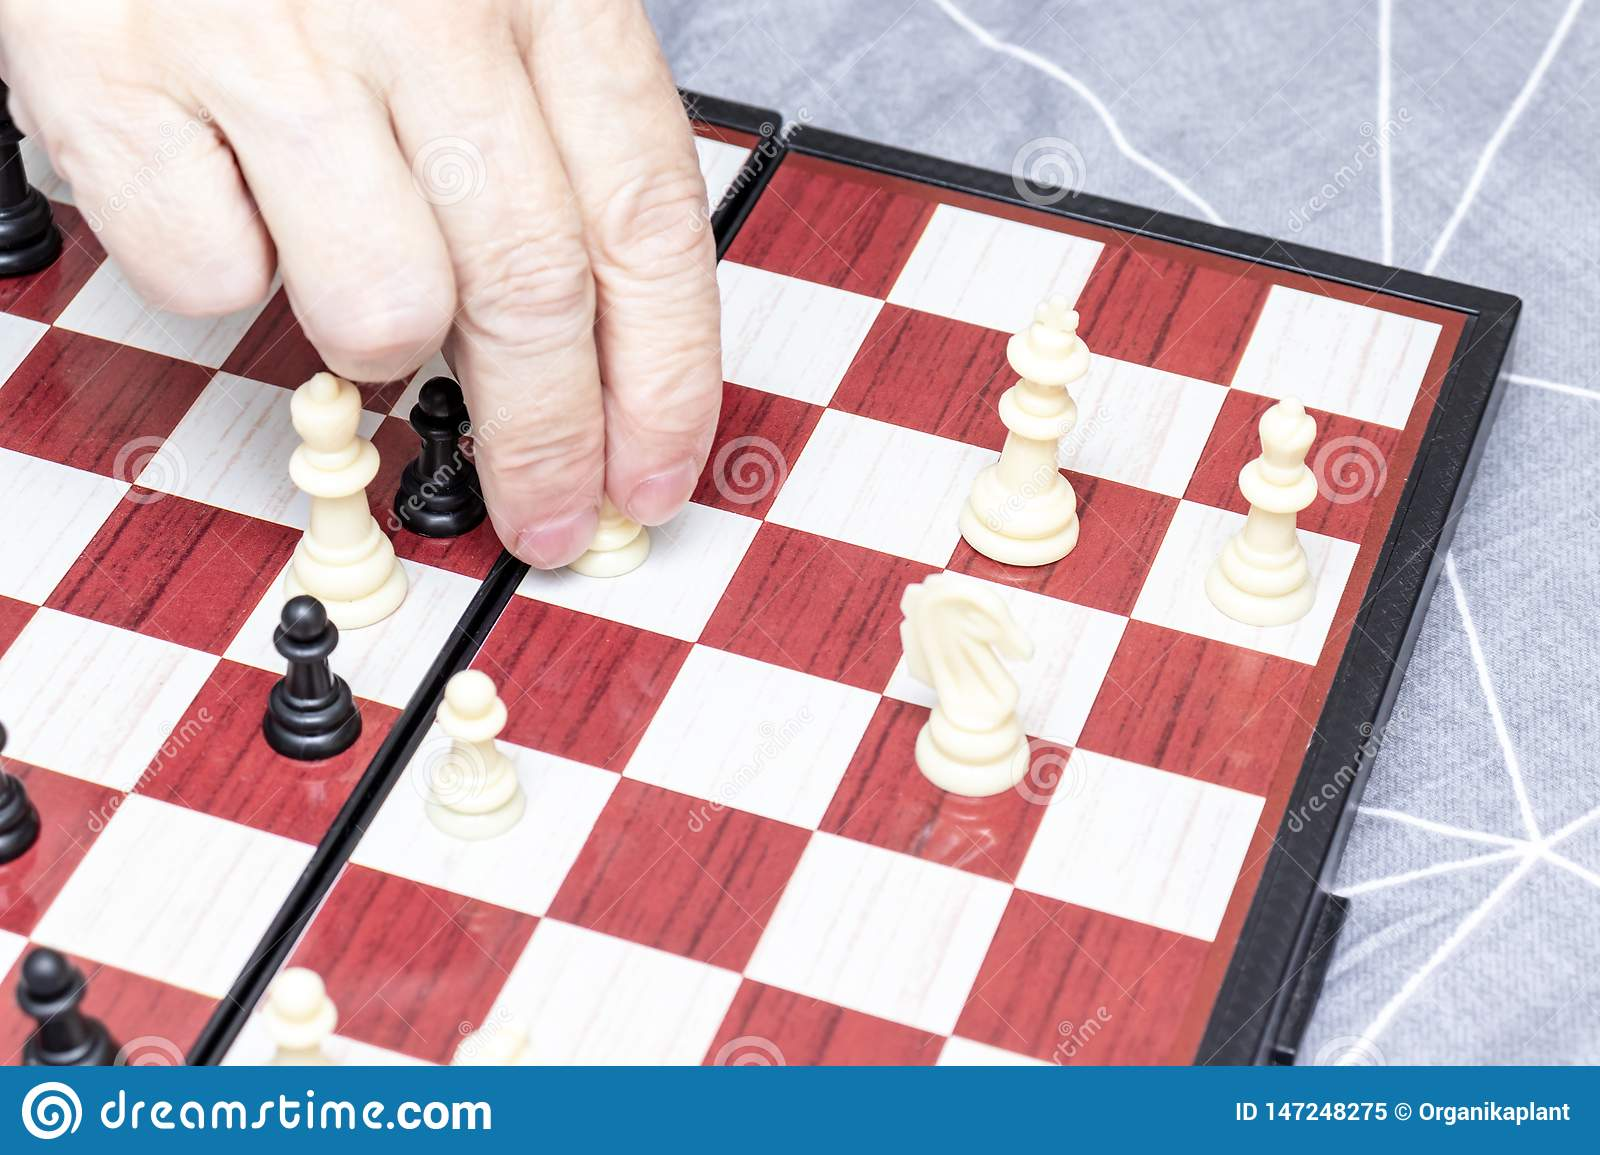 Hand of an elderly senior woman playing chess close up, entertainment and intellectual activity for retired people concept